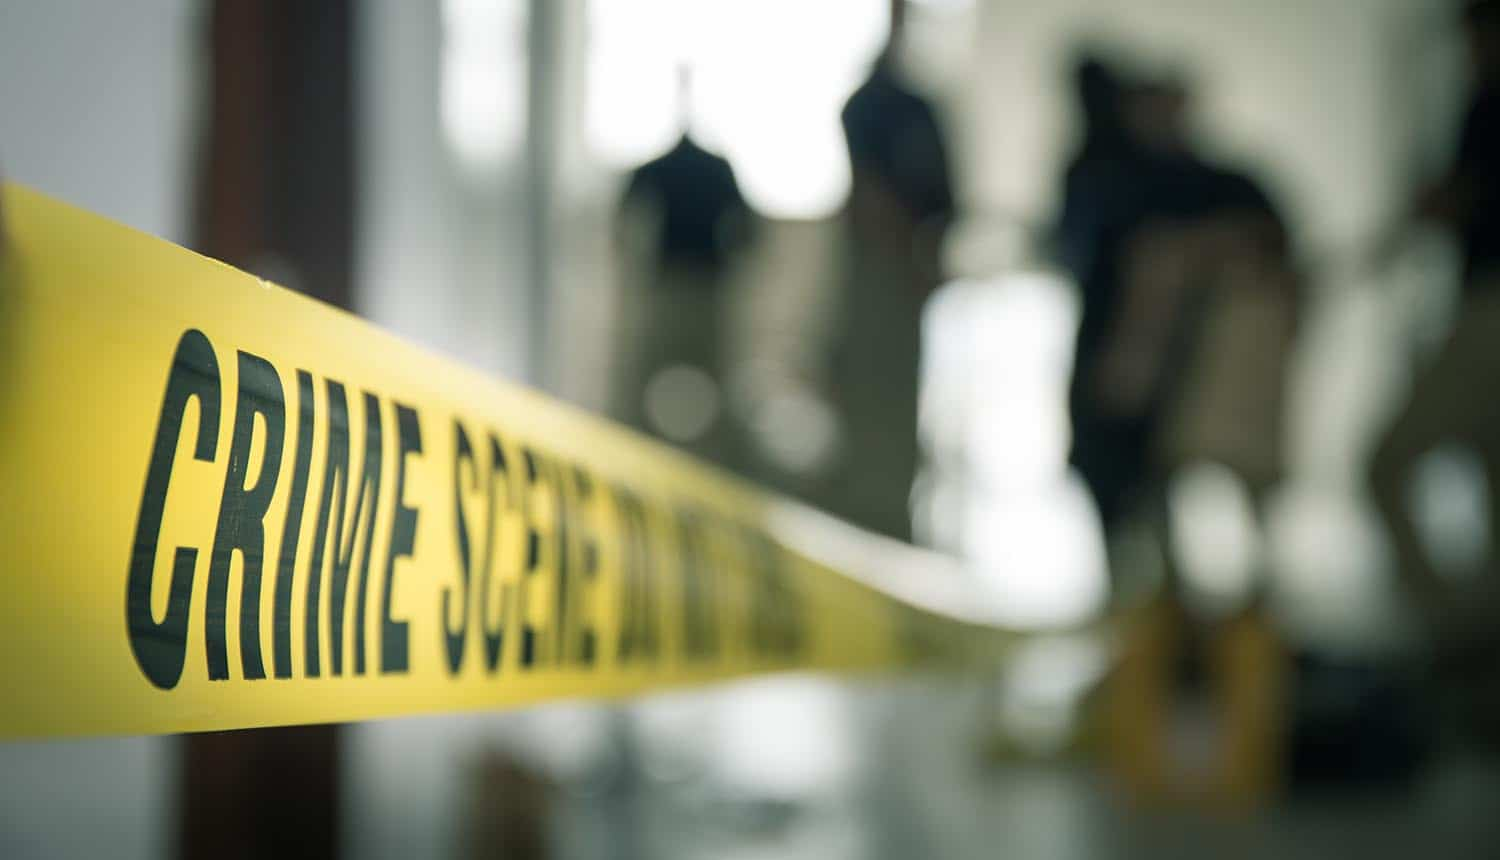 Crime scene tape with blurred forensic law enforcement background showing need for digital forensics